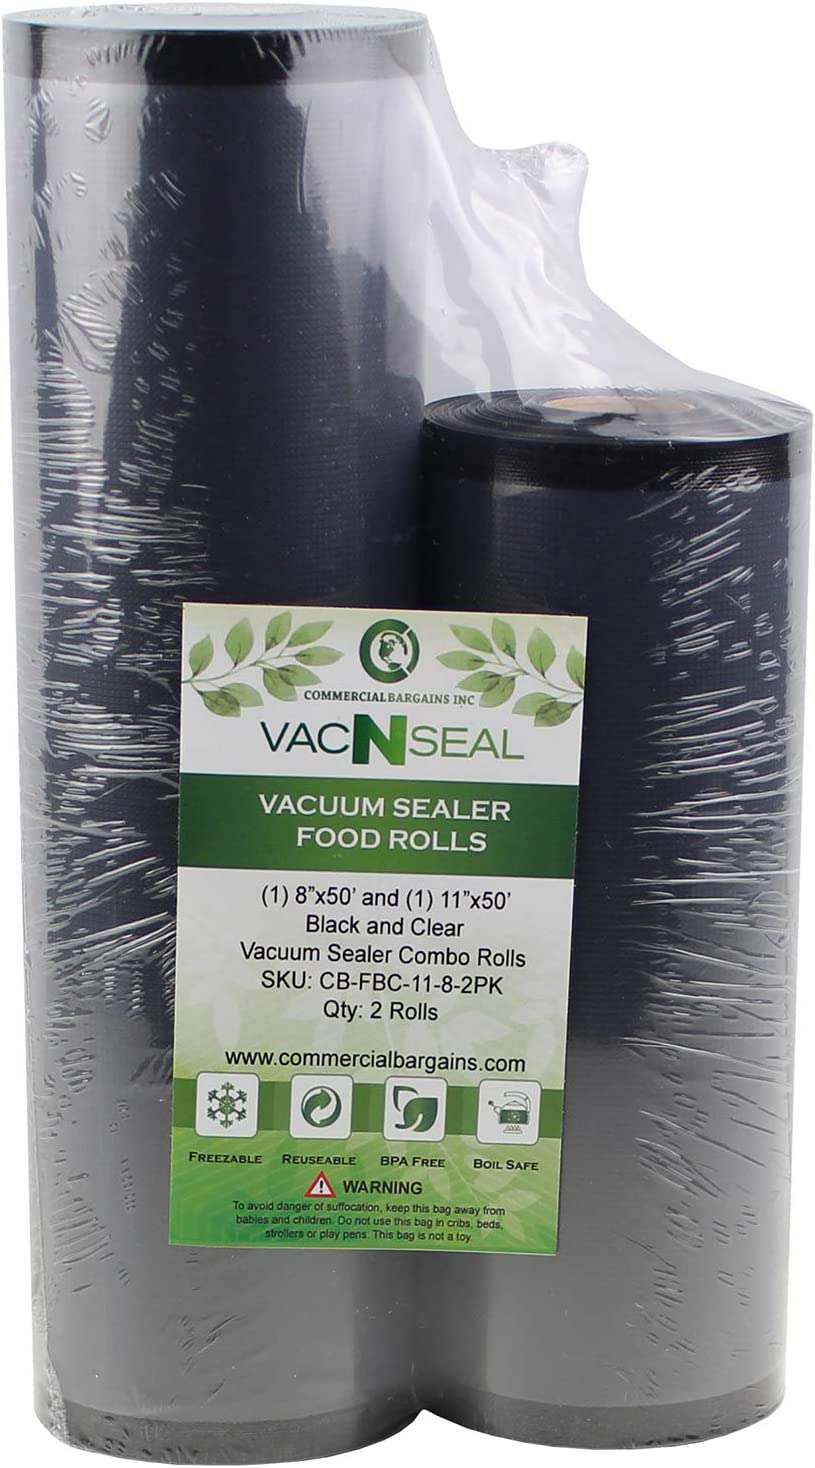 """Commercial Bargains 11"""" x 50' and 8"""" x 50' Black and Clear Commercial Vacuum Sealer Food Storage Rolls"""